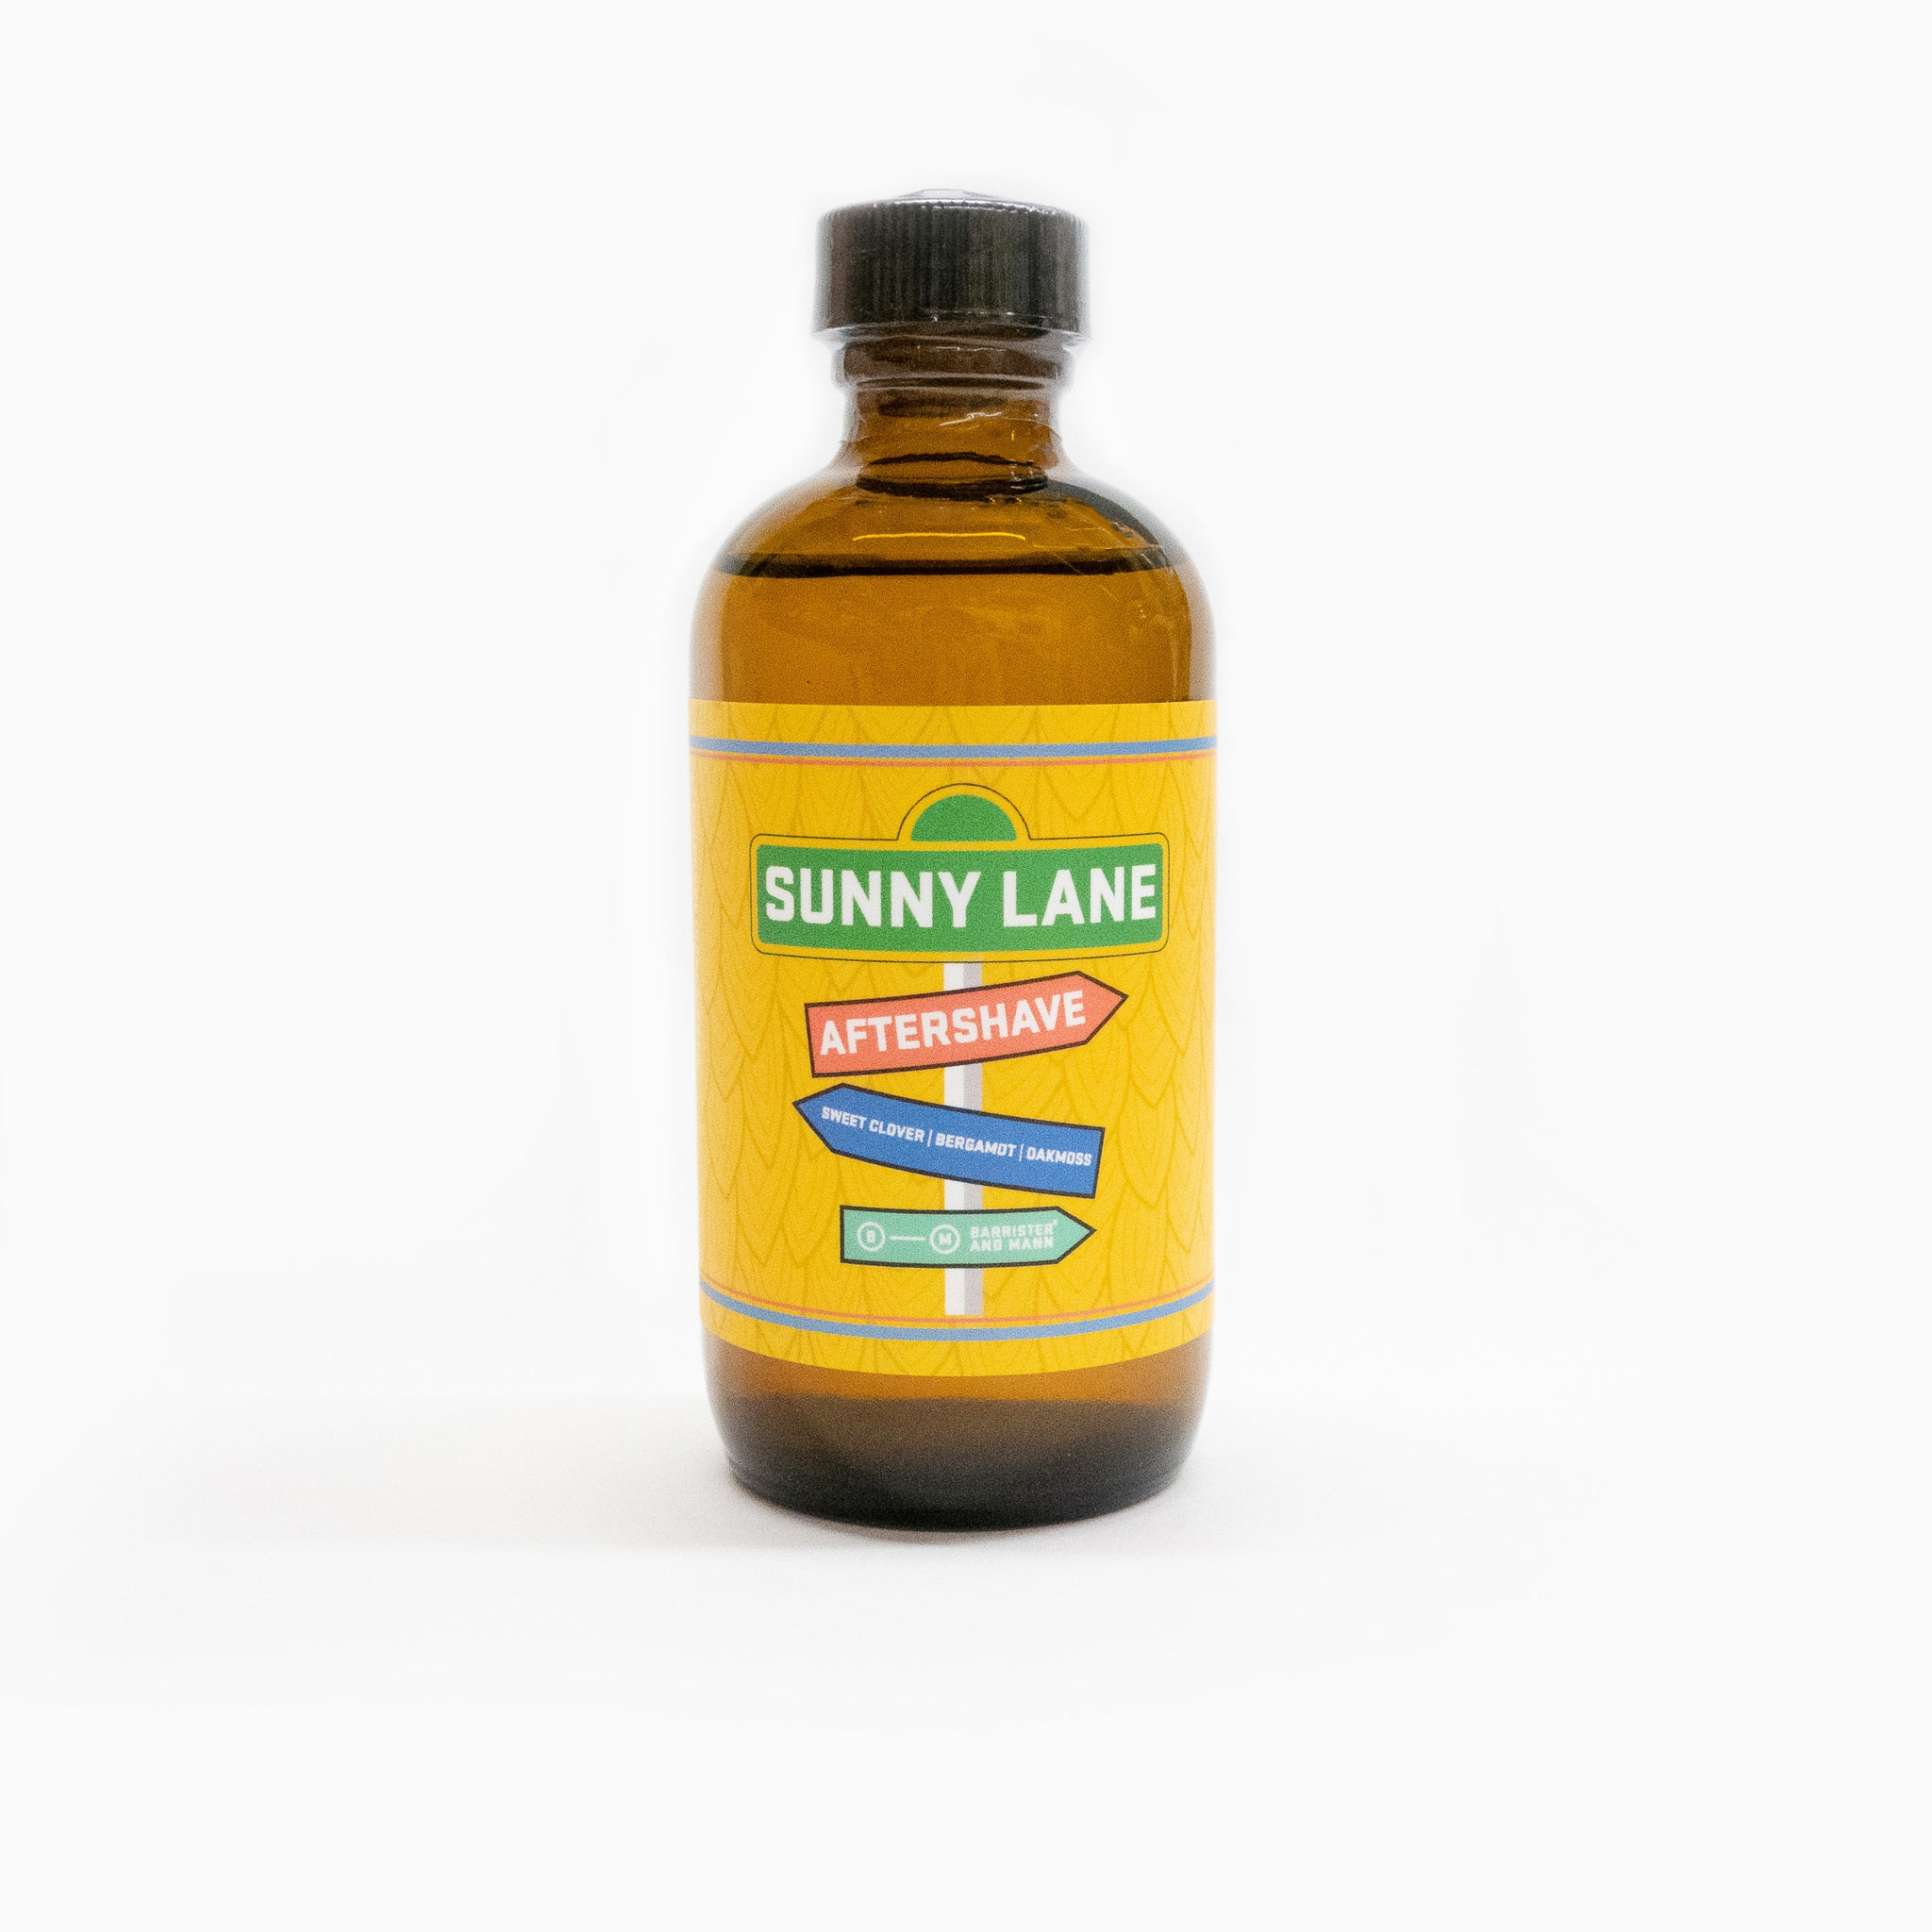 Barrister and Mann 'Sunny Lane' Aftershave